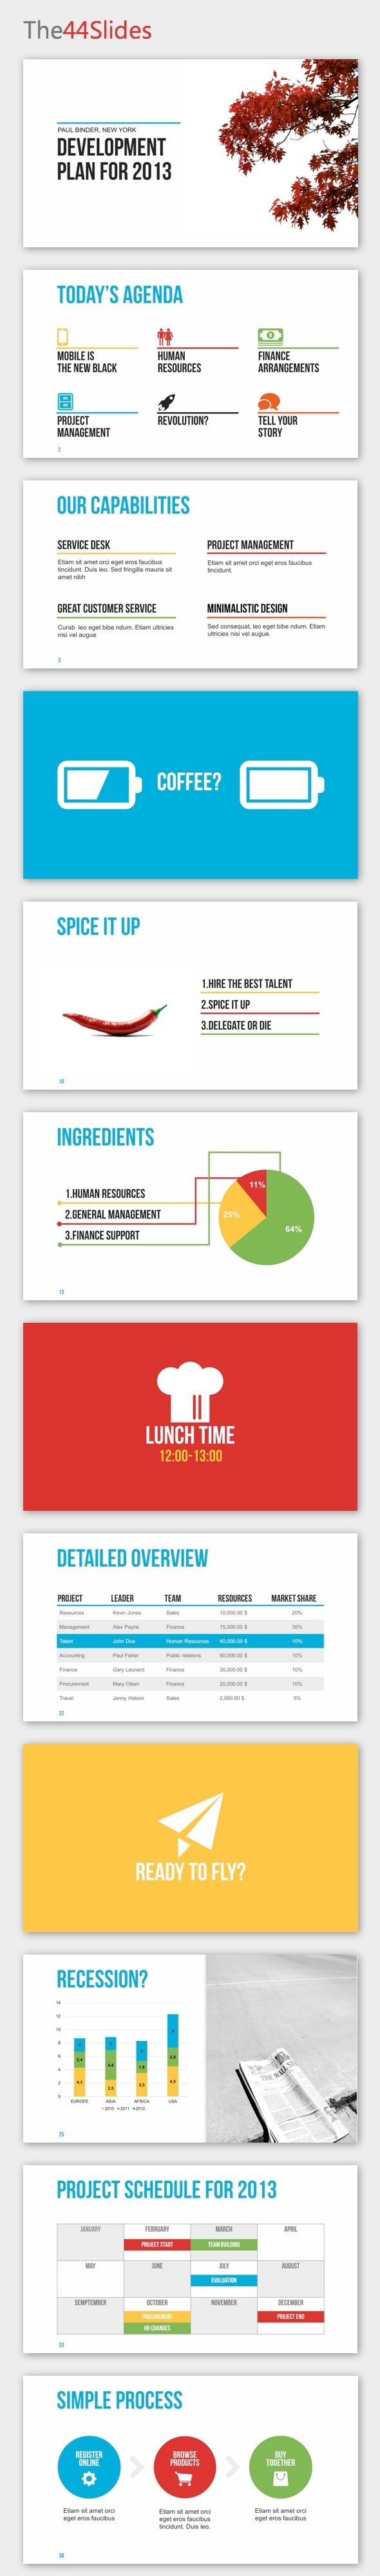 The44Slides Powerpoint Template  #presentation #PPTX • Click here to download ! http://graphicriver.net/item/the44slides-powerpoint-template/4085888?s_rank=865&ref=pxcr